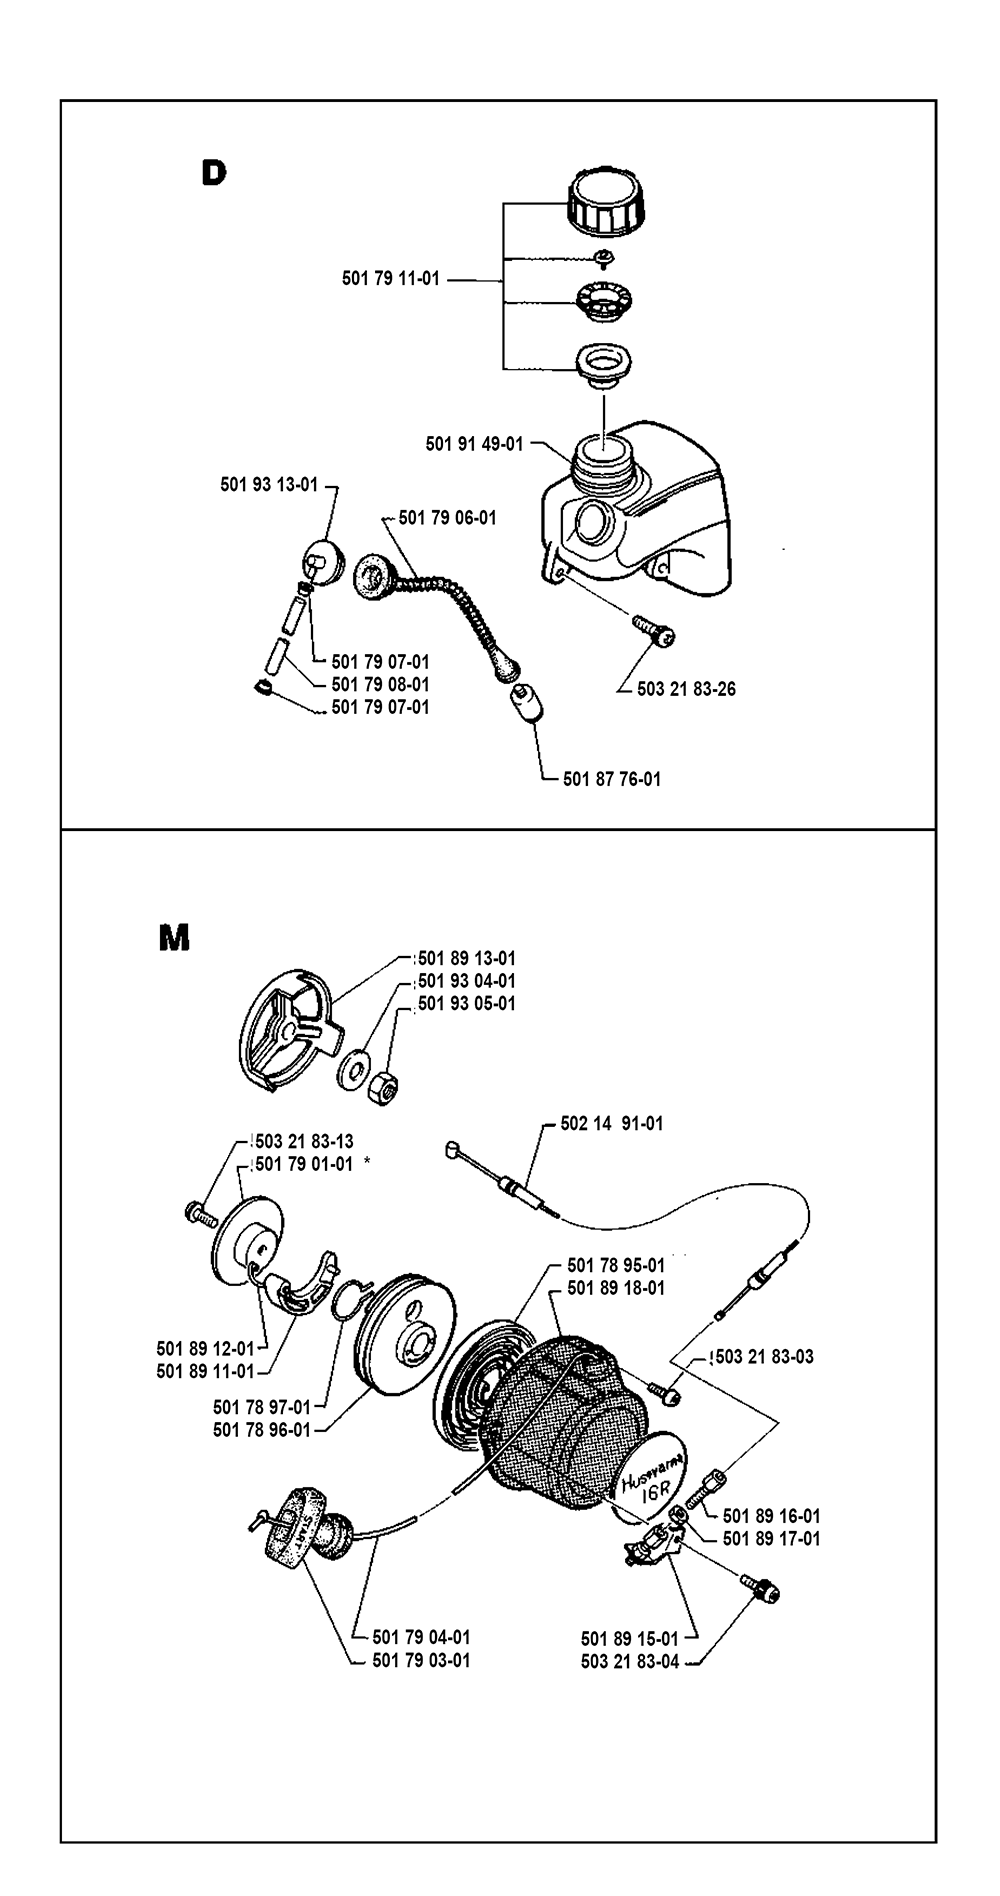 16 R-(I8600002)-Husqvarna-PB-3Break Down